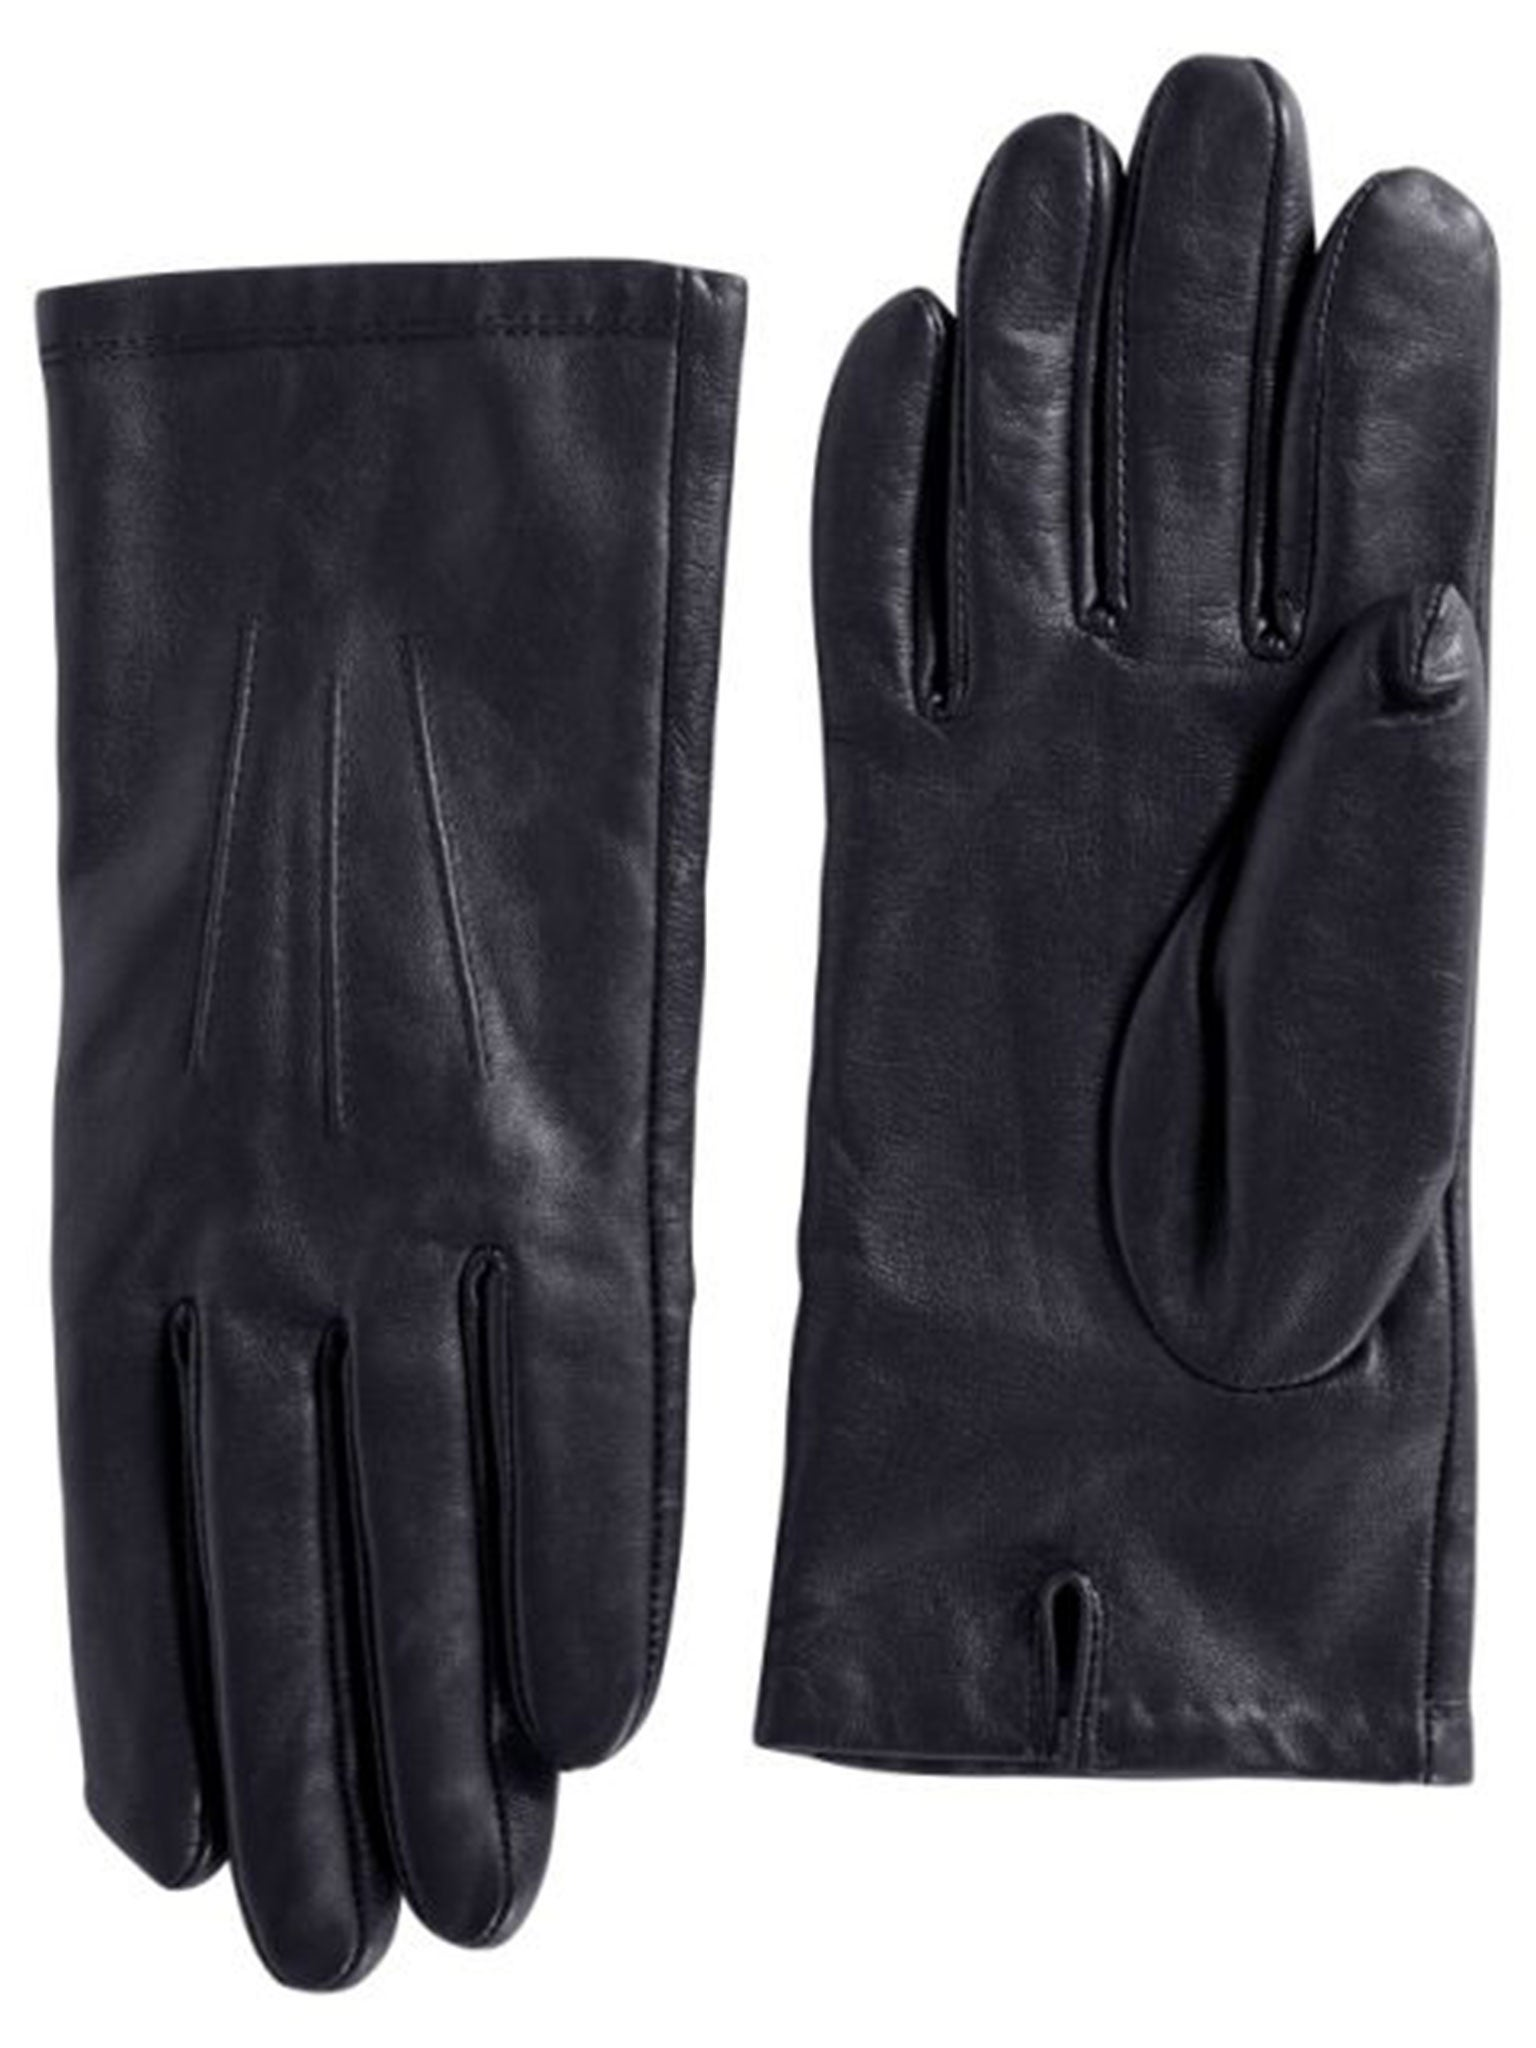 New Womens Driving Glove Soft Black Leather Thinsulate Lined Snap Close S Small